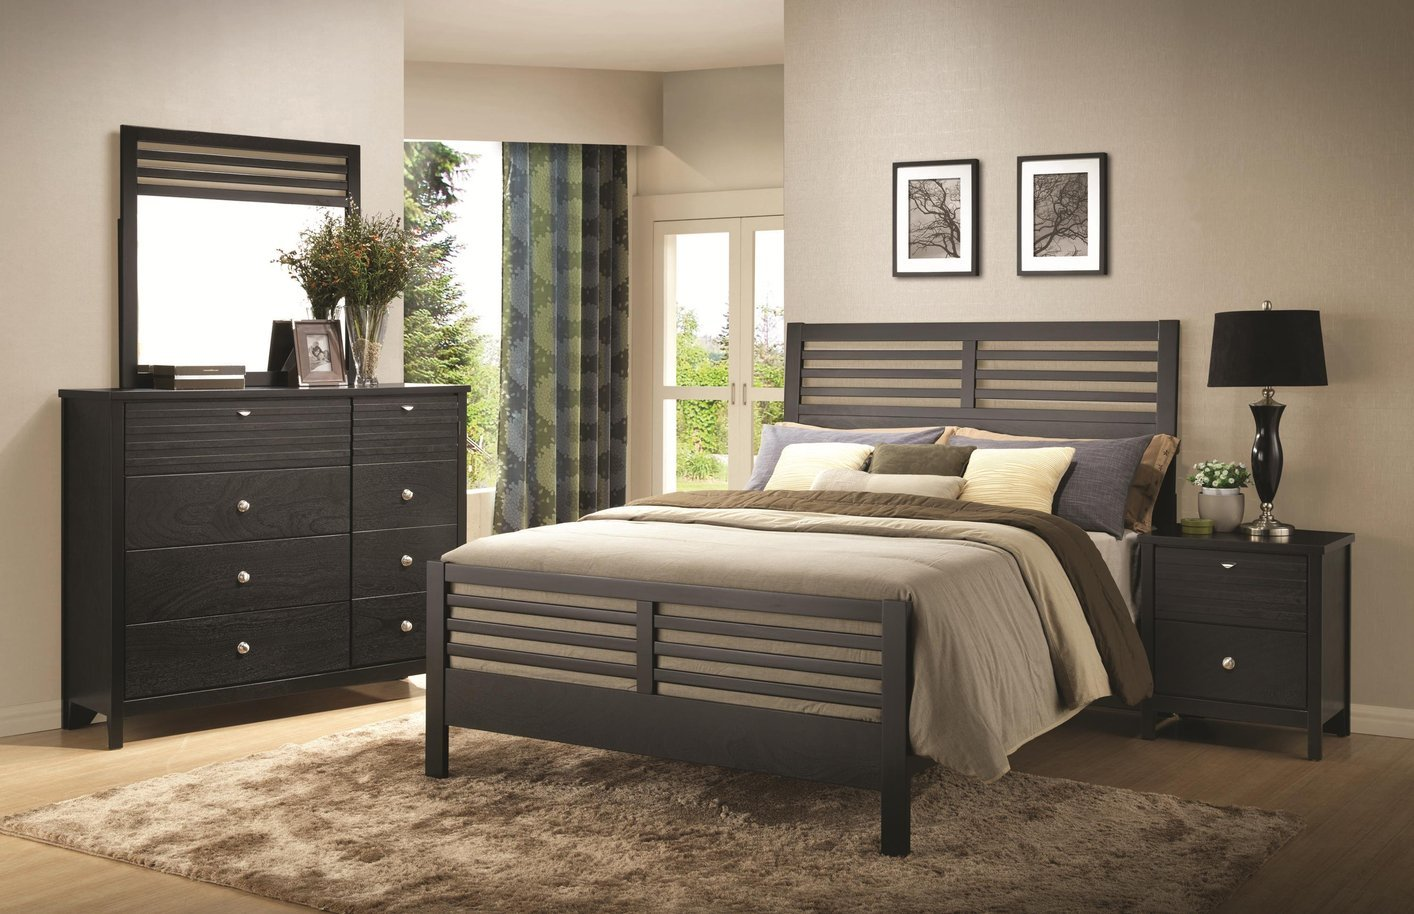 Coaster 202721kw Black California King Size Wood Bed Steal A Sofa Furniture Outlet Los Angeles Ca